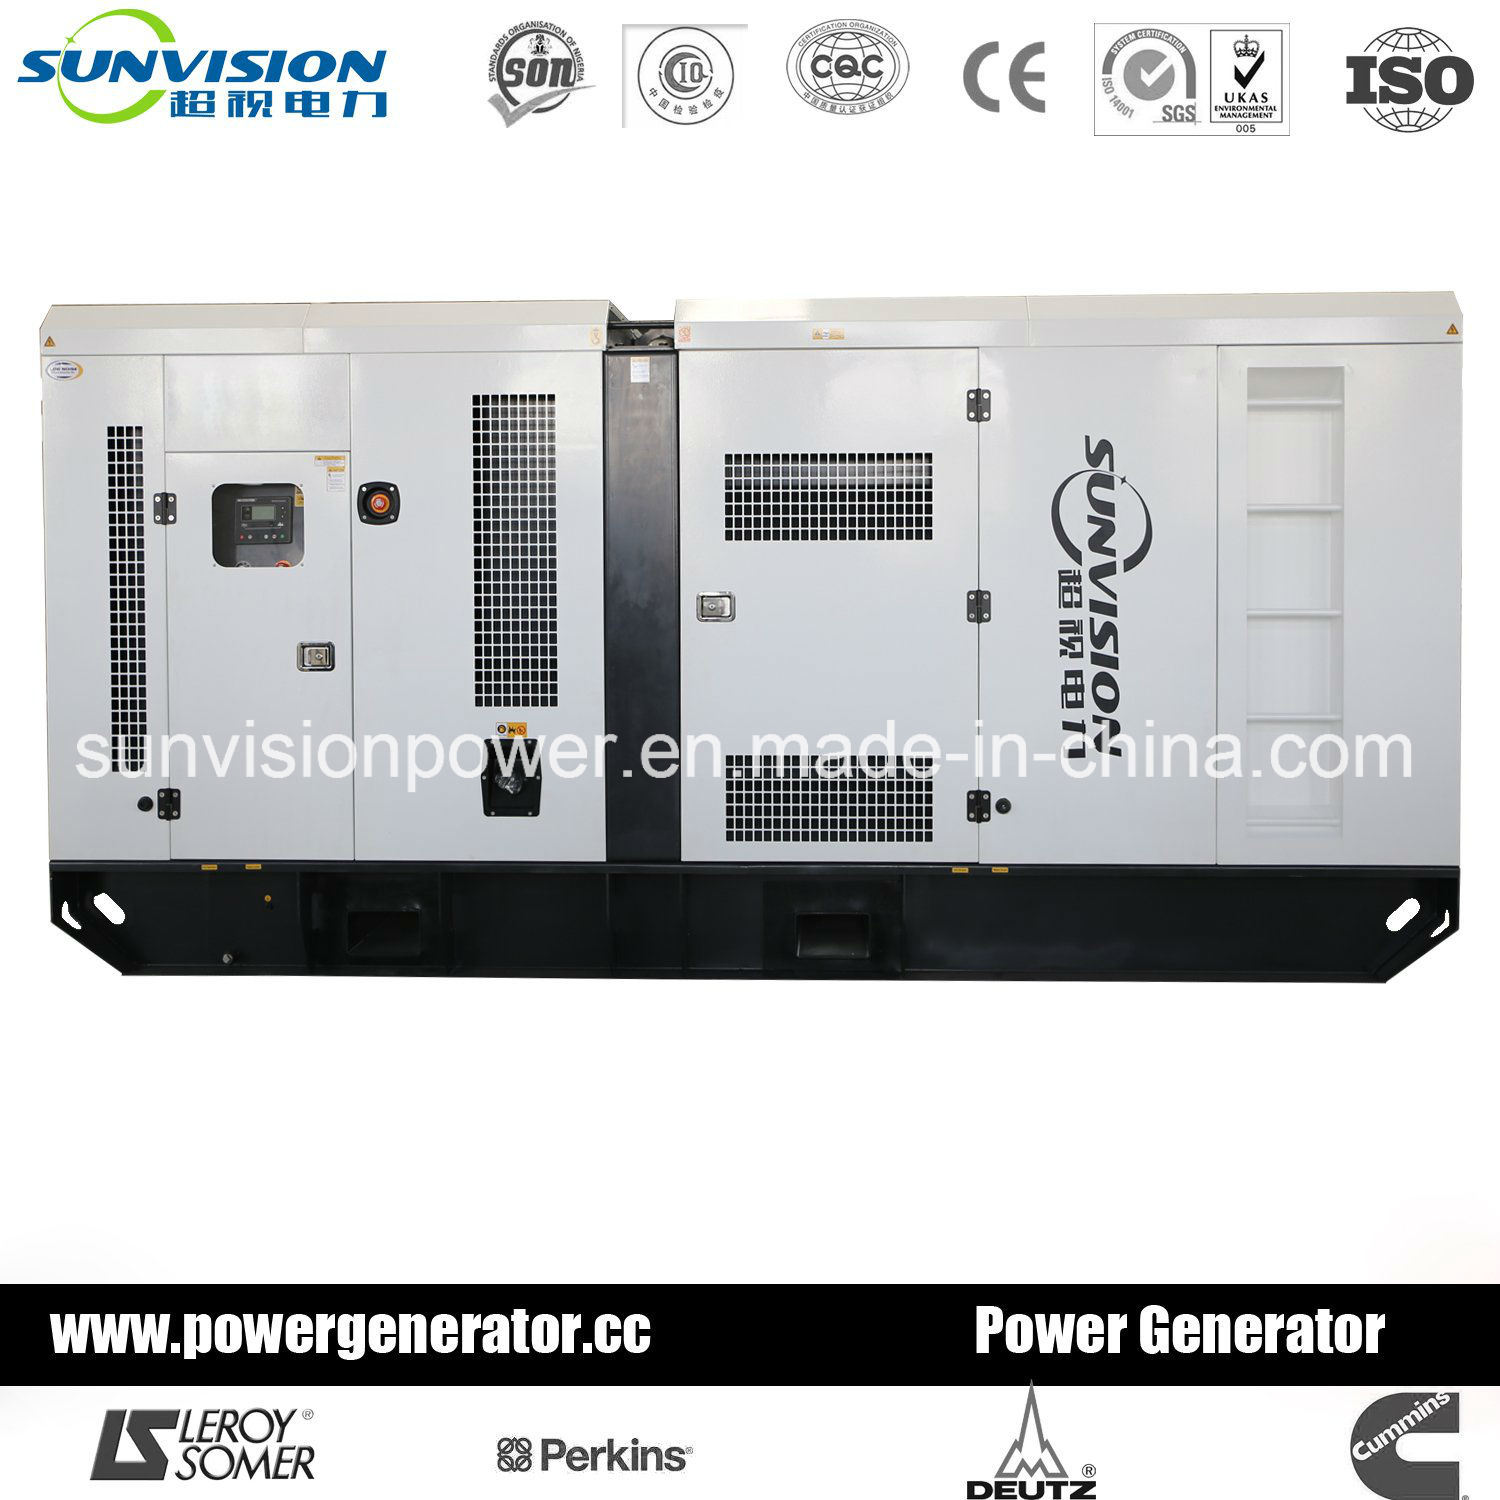 450kVA Perkins Diesel Generator Set with Industrial Enclosure